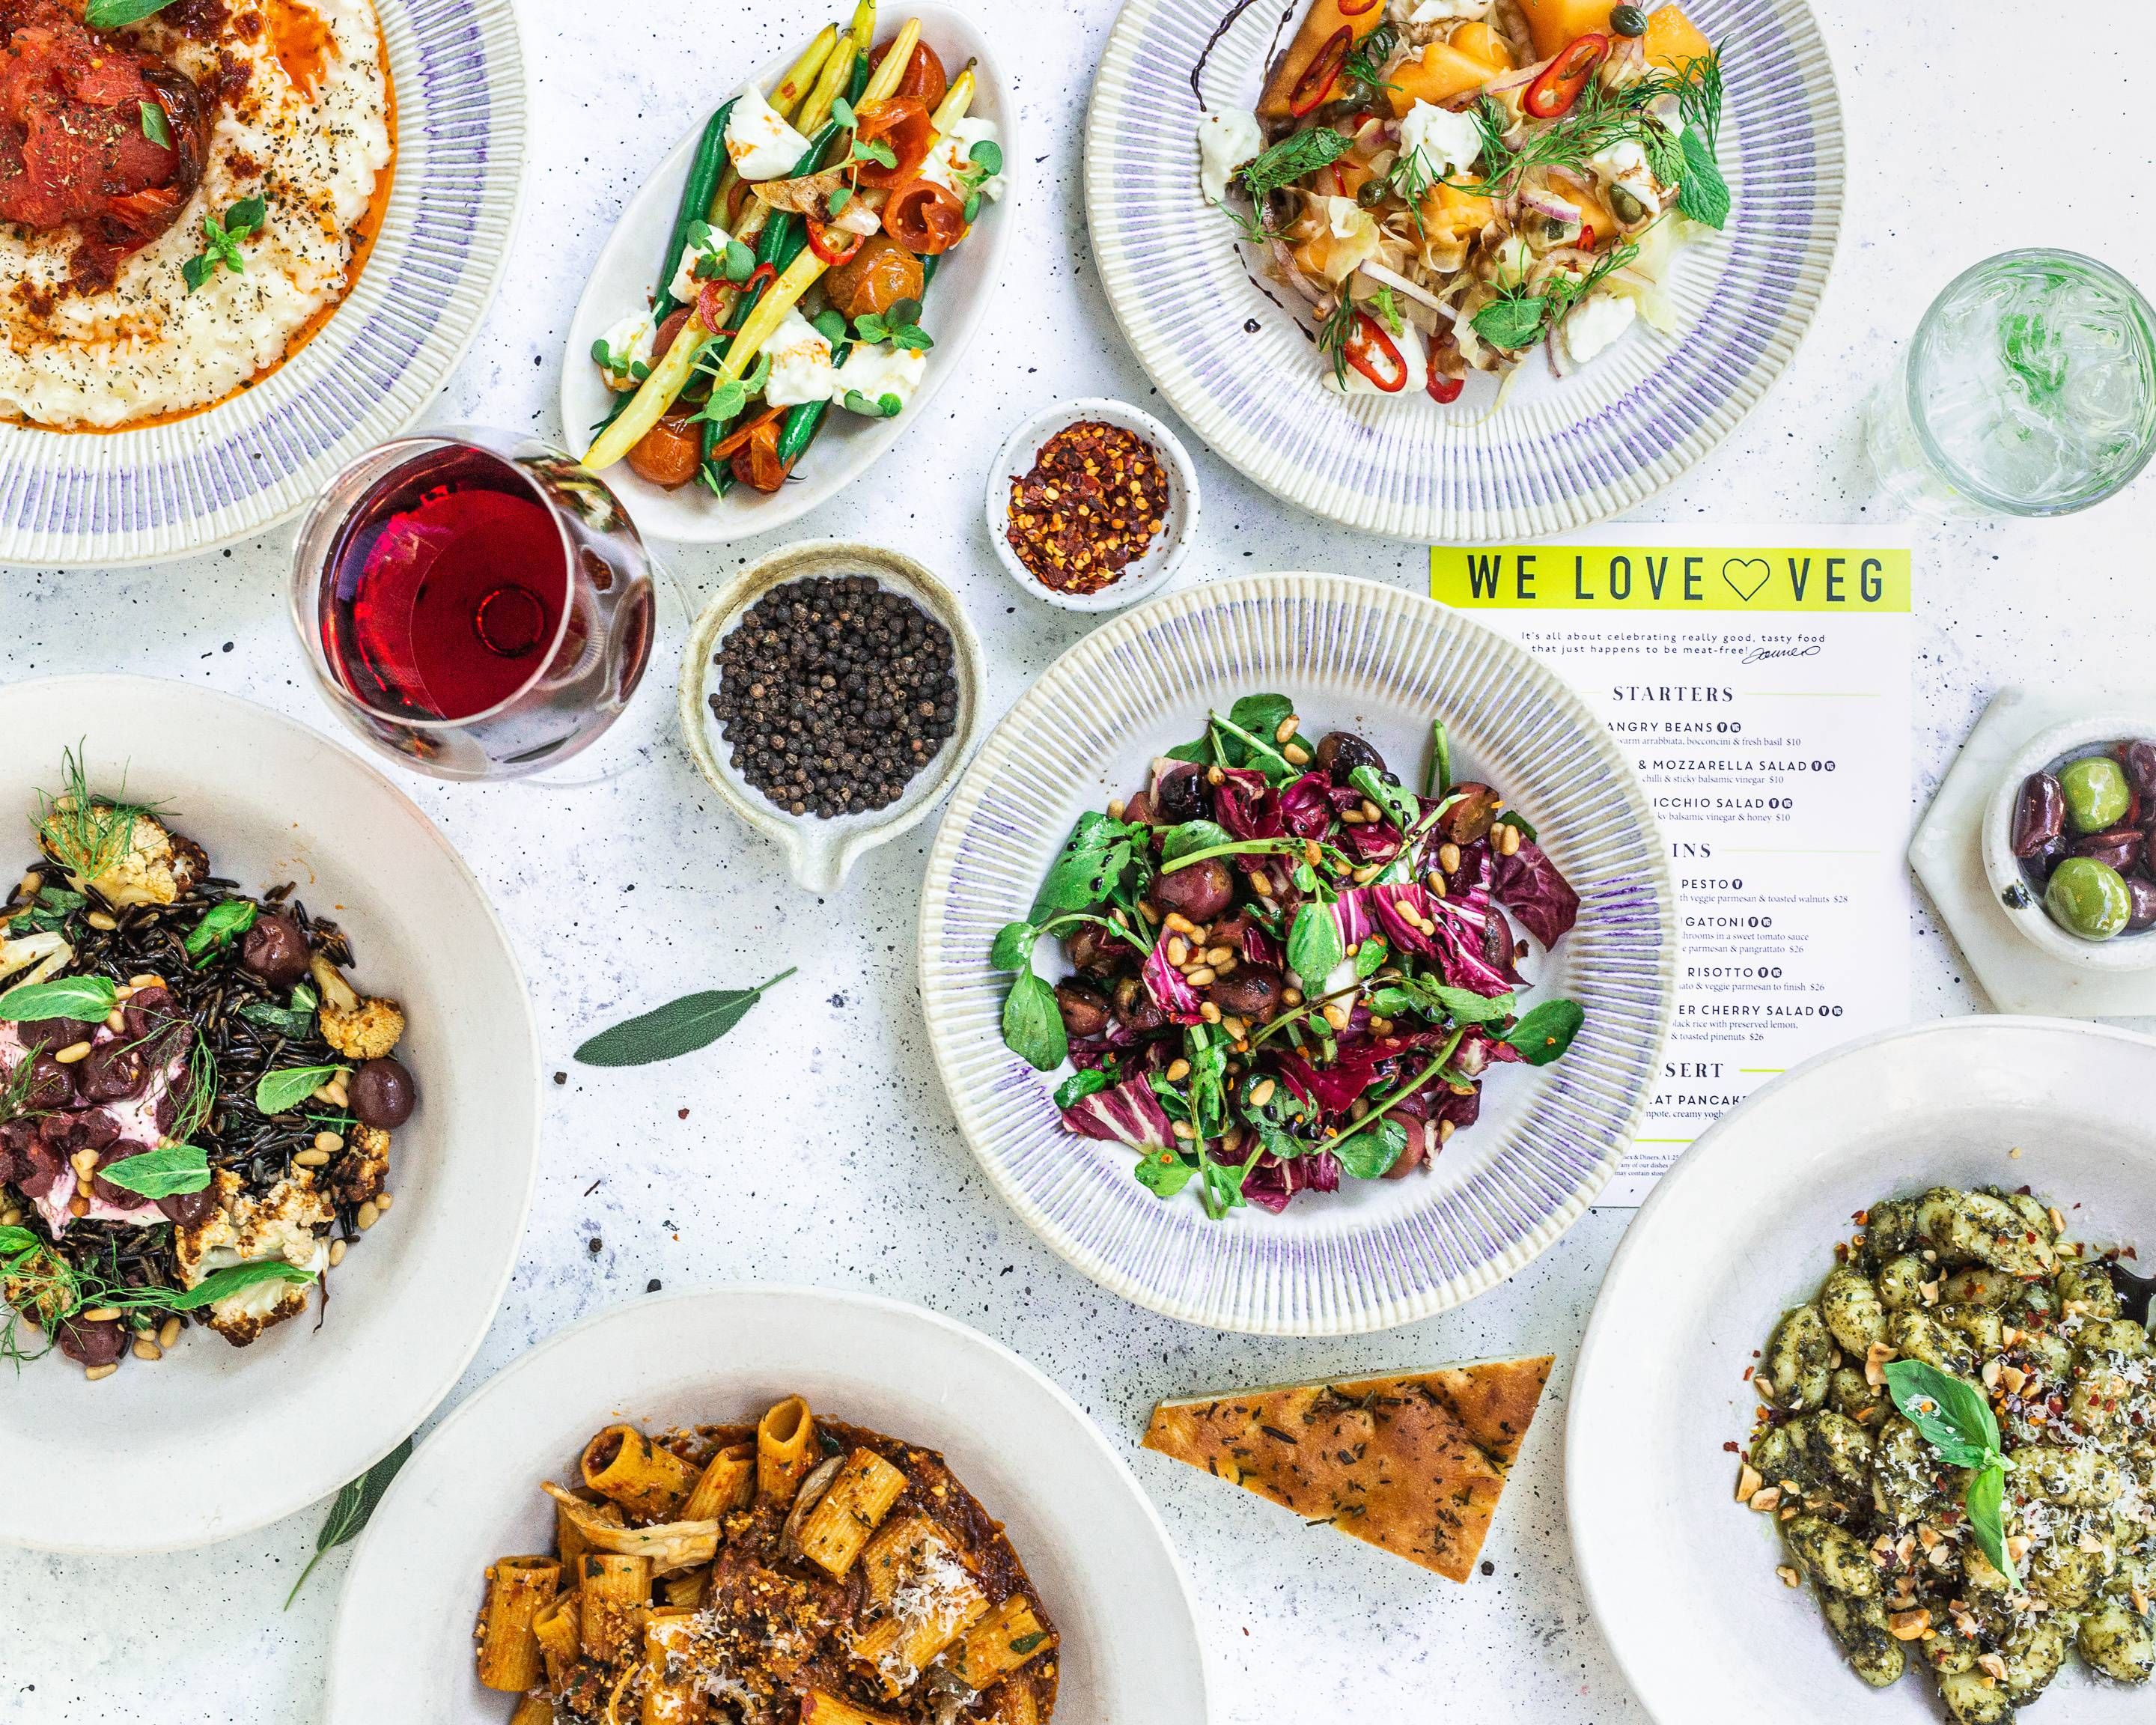 We Love Veg By Jamie Oliver Perth Delivery Perth Uber Eats